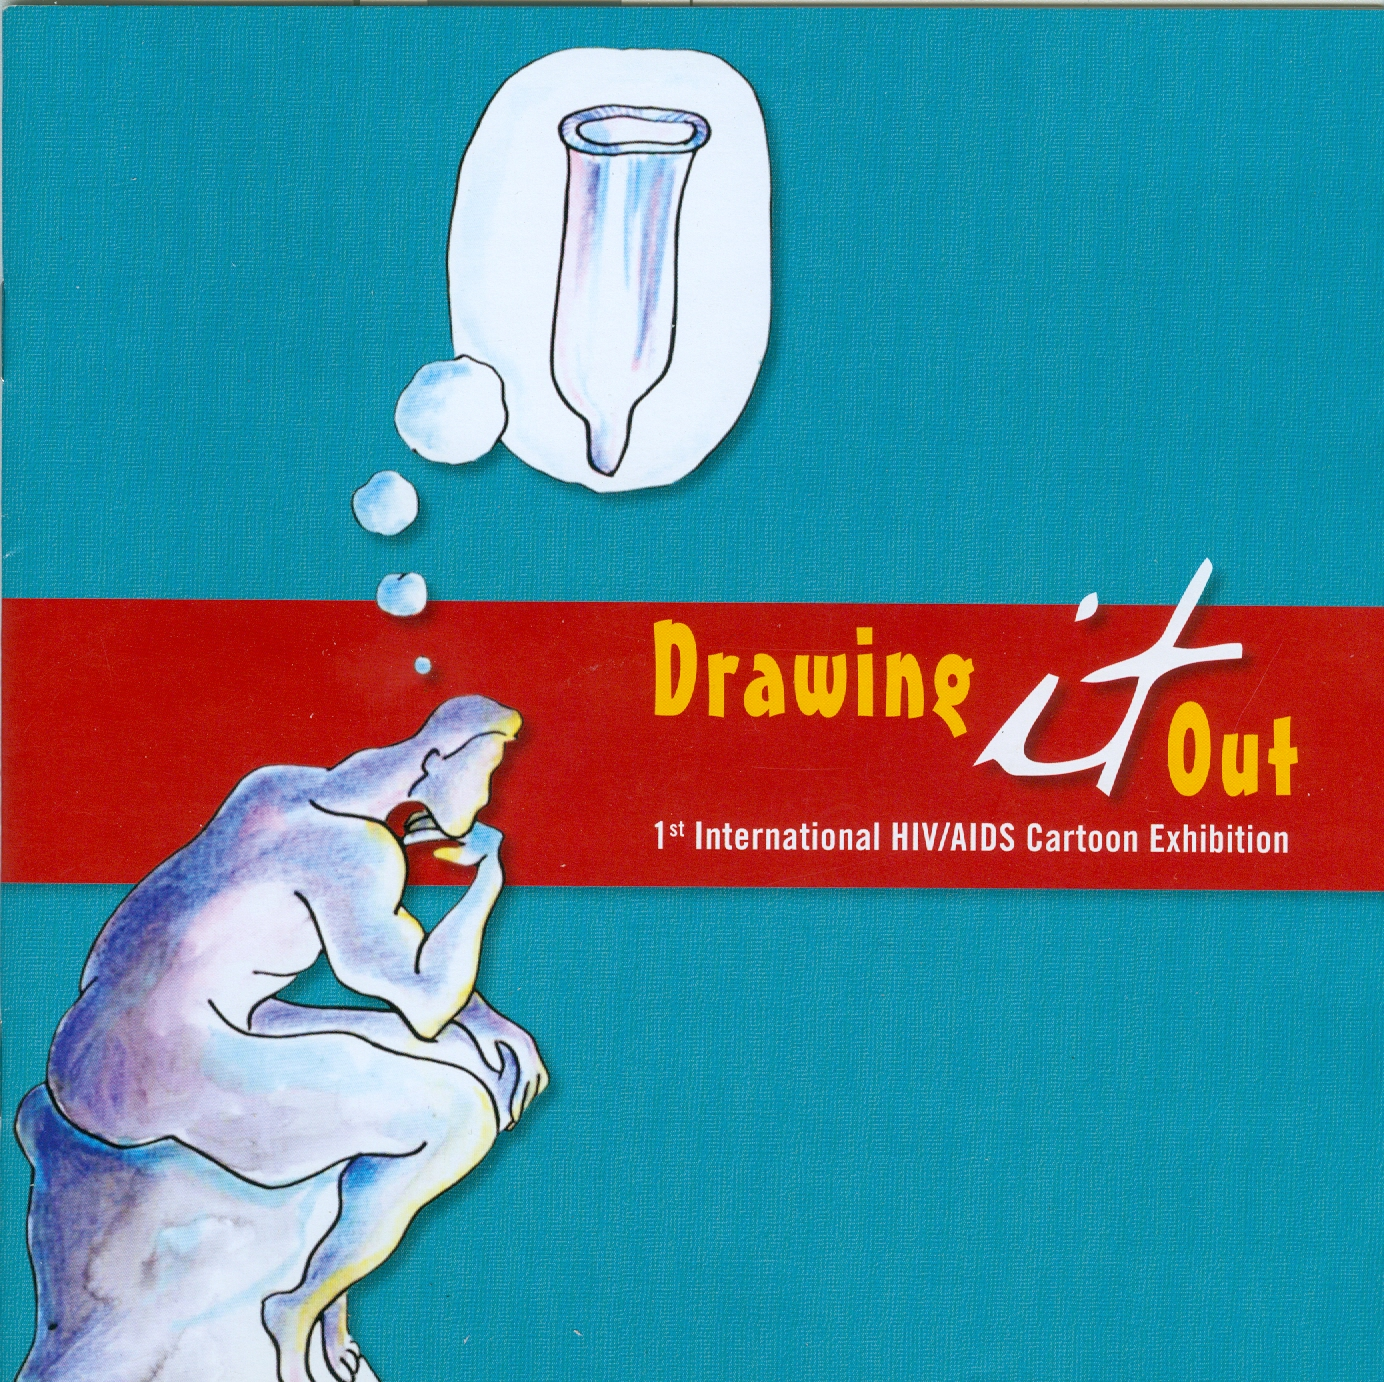 Photo of the cover of the Drawing it Out brochure featuring a picture of the Thinker statue with a thought bubble with a condom inside it